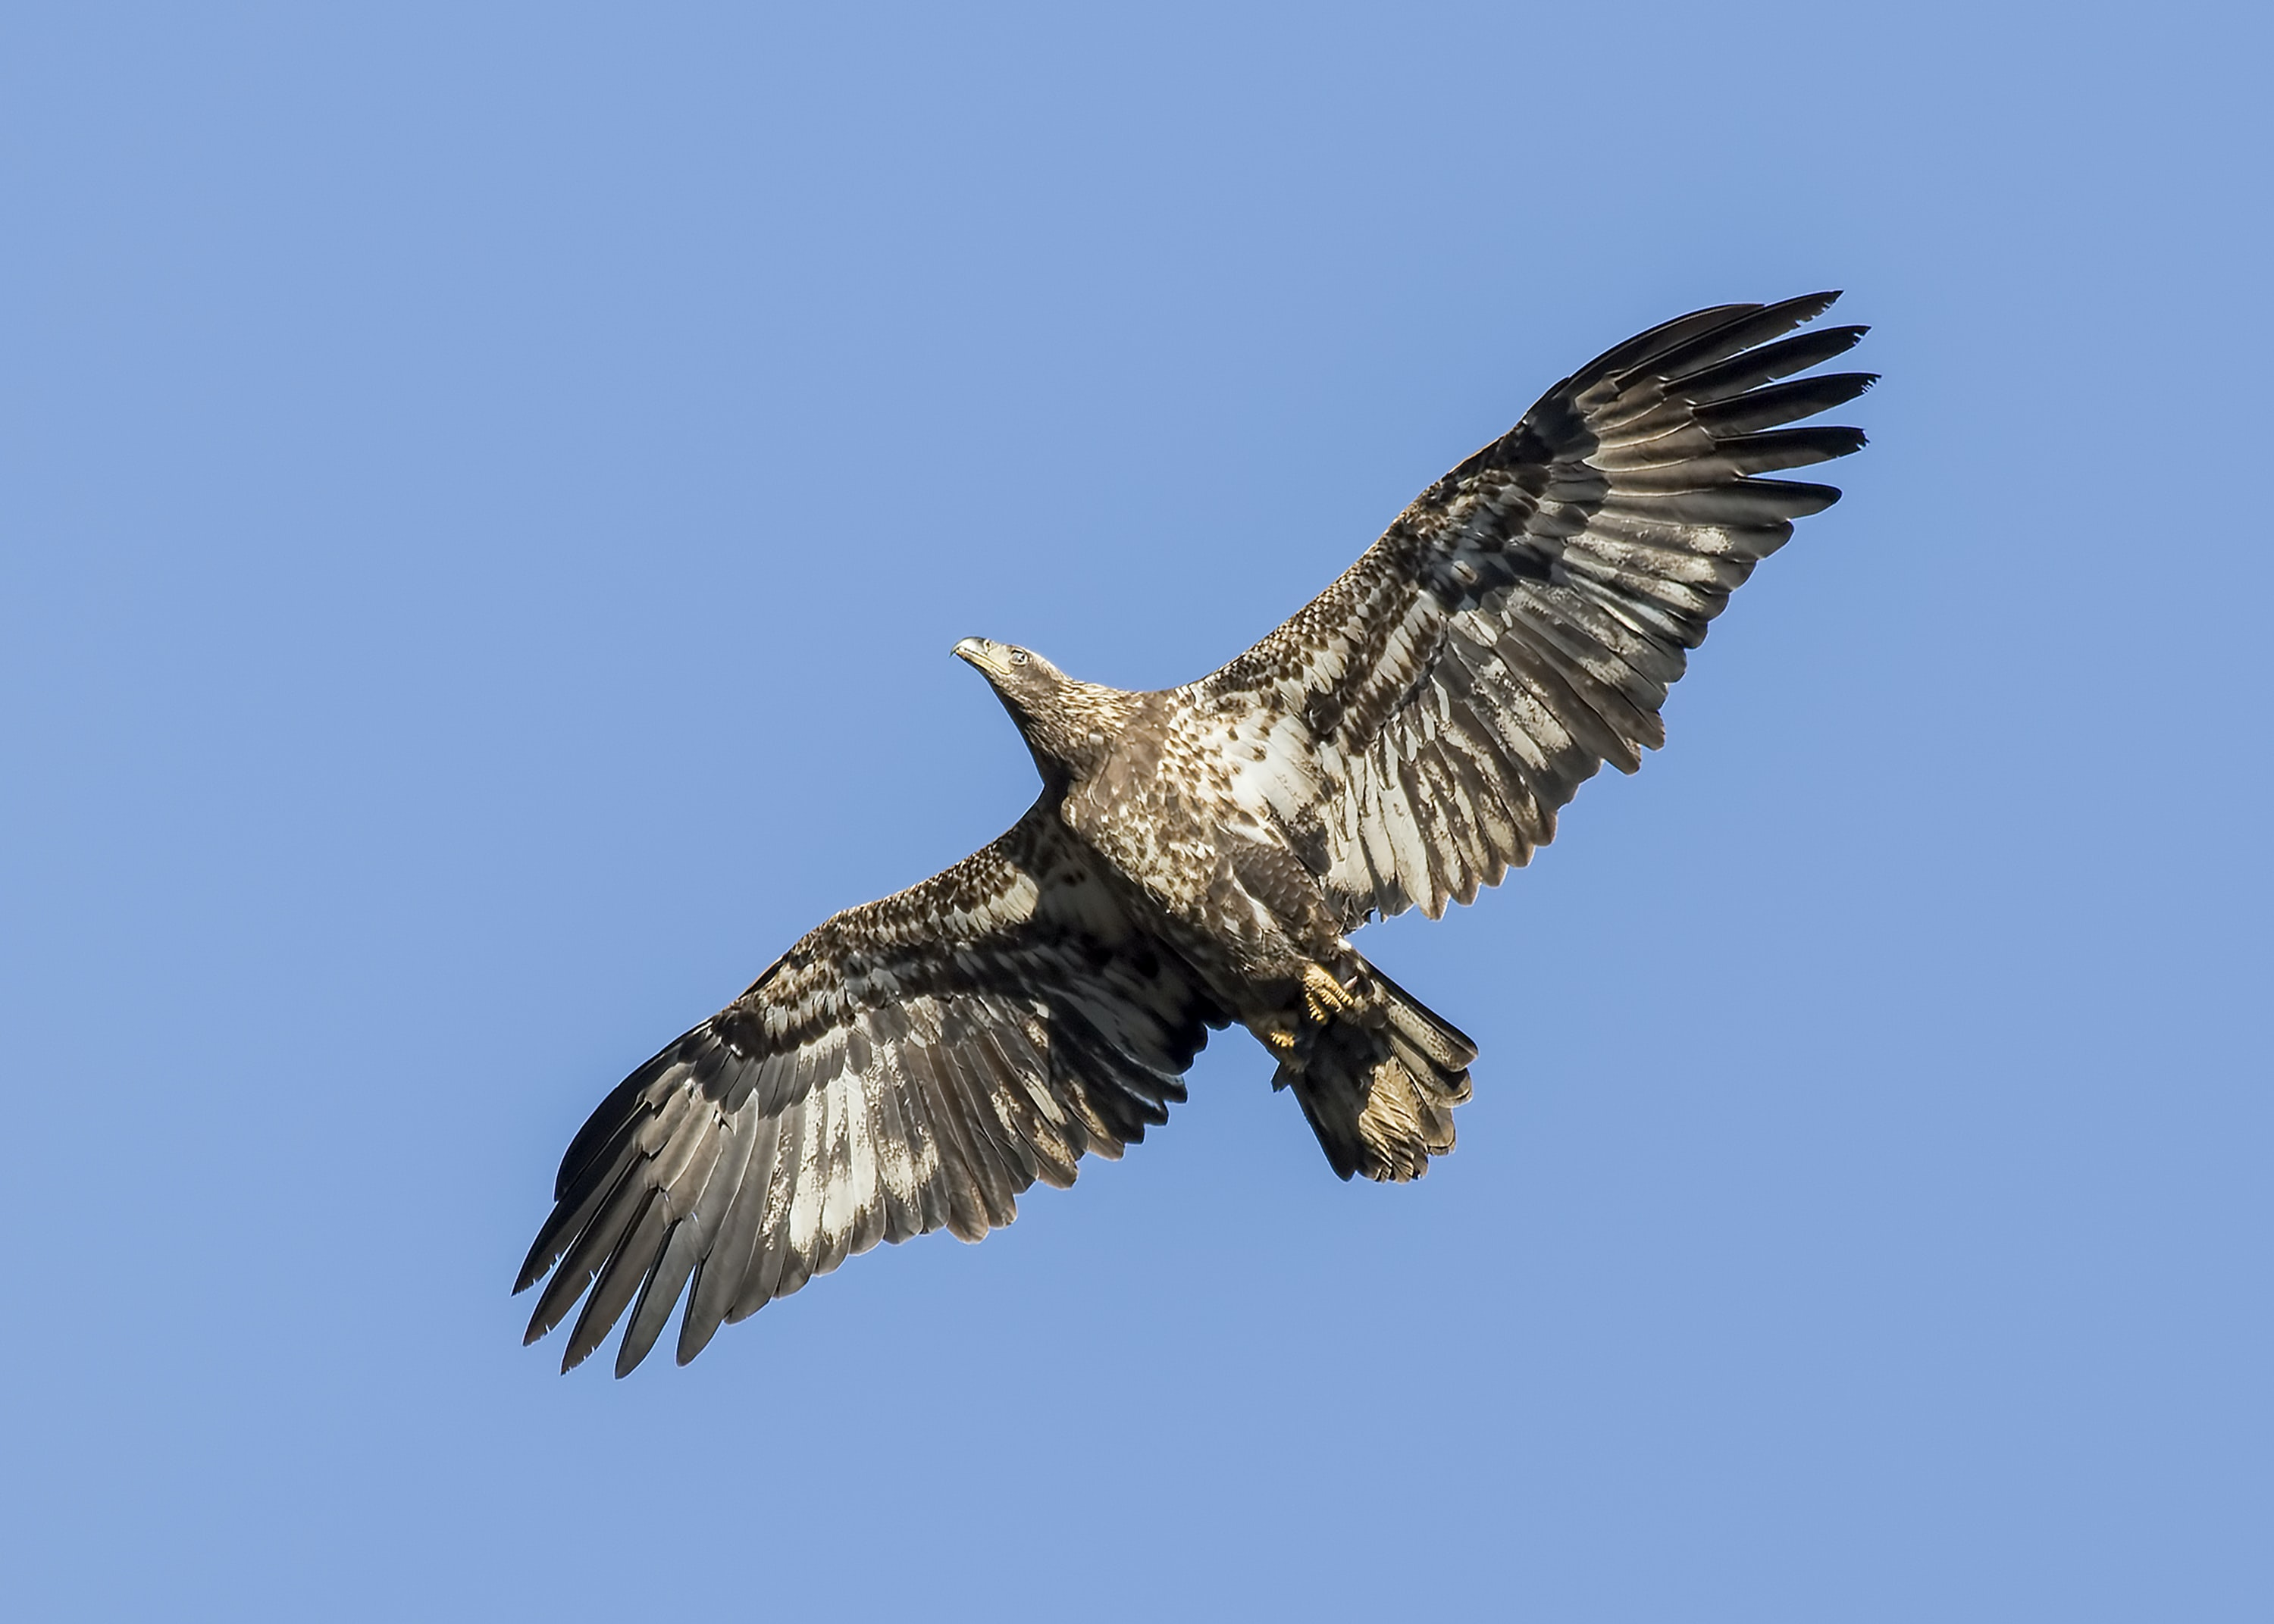 close-up photo of flying eagle